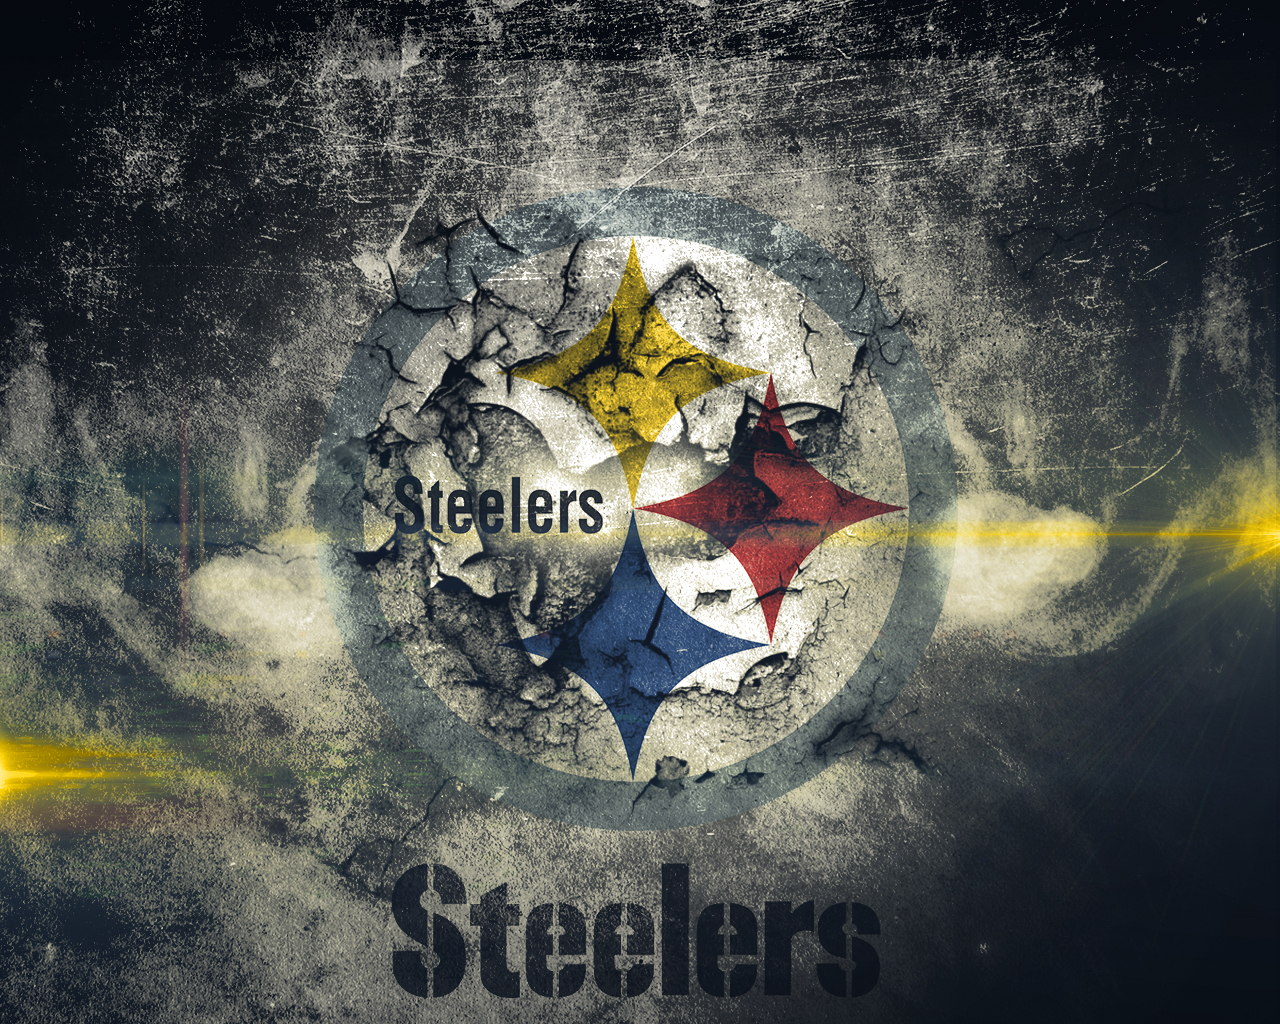 1280x1024 - Steelers Desktop 44